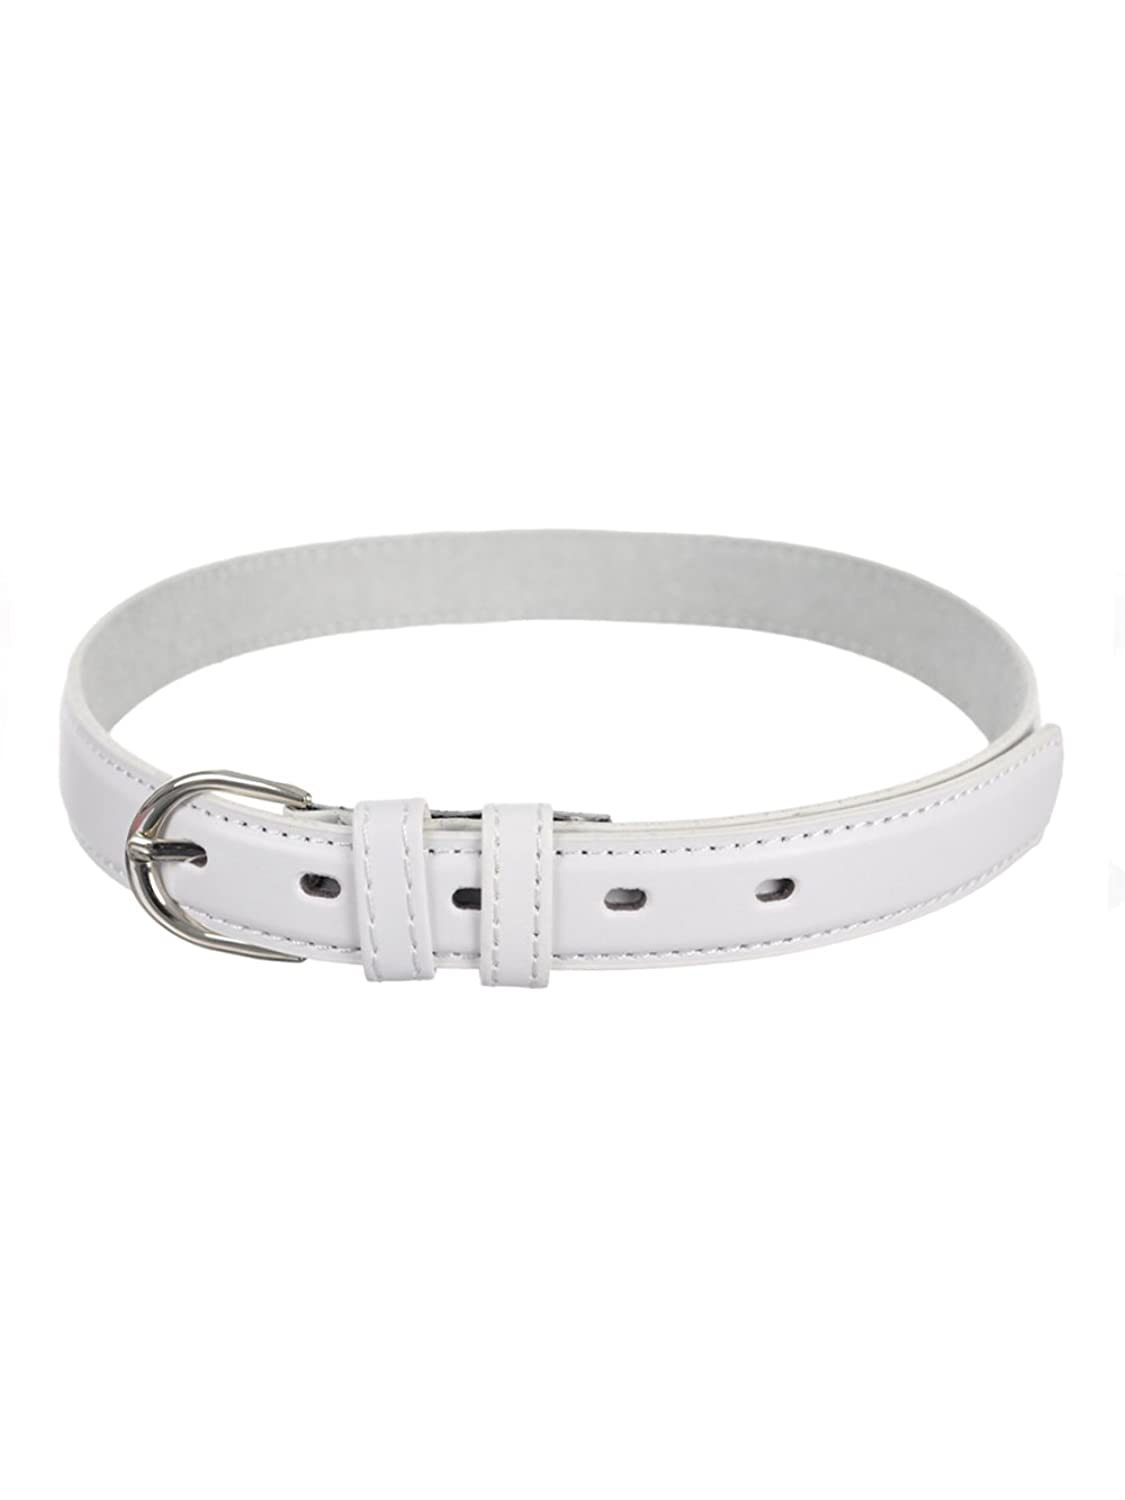 Cookie's Brand Girls' Belt